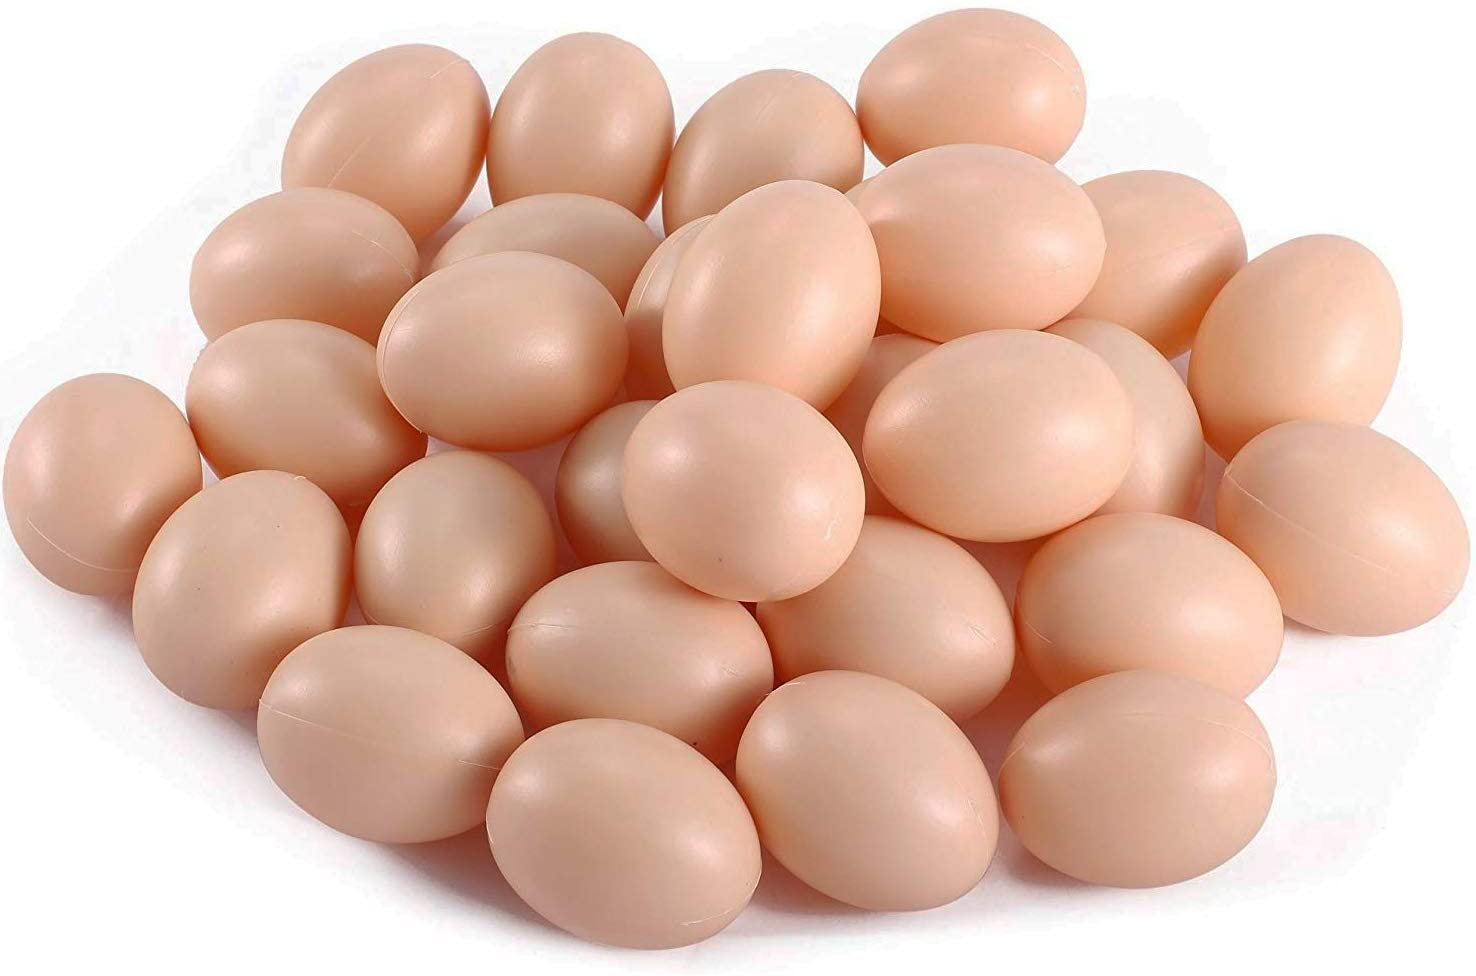 Liberty Imports Bag of Realistic Chicken Eggs Toy Food Playset for Kids (Pack of 30 Faux Fake Eggs)